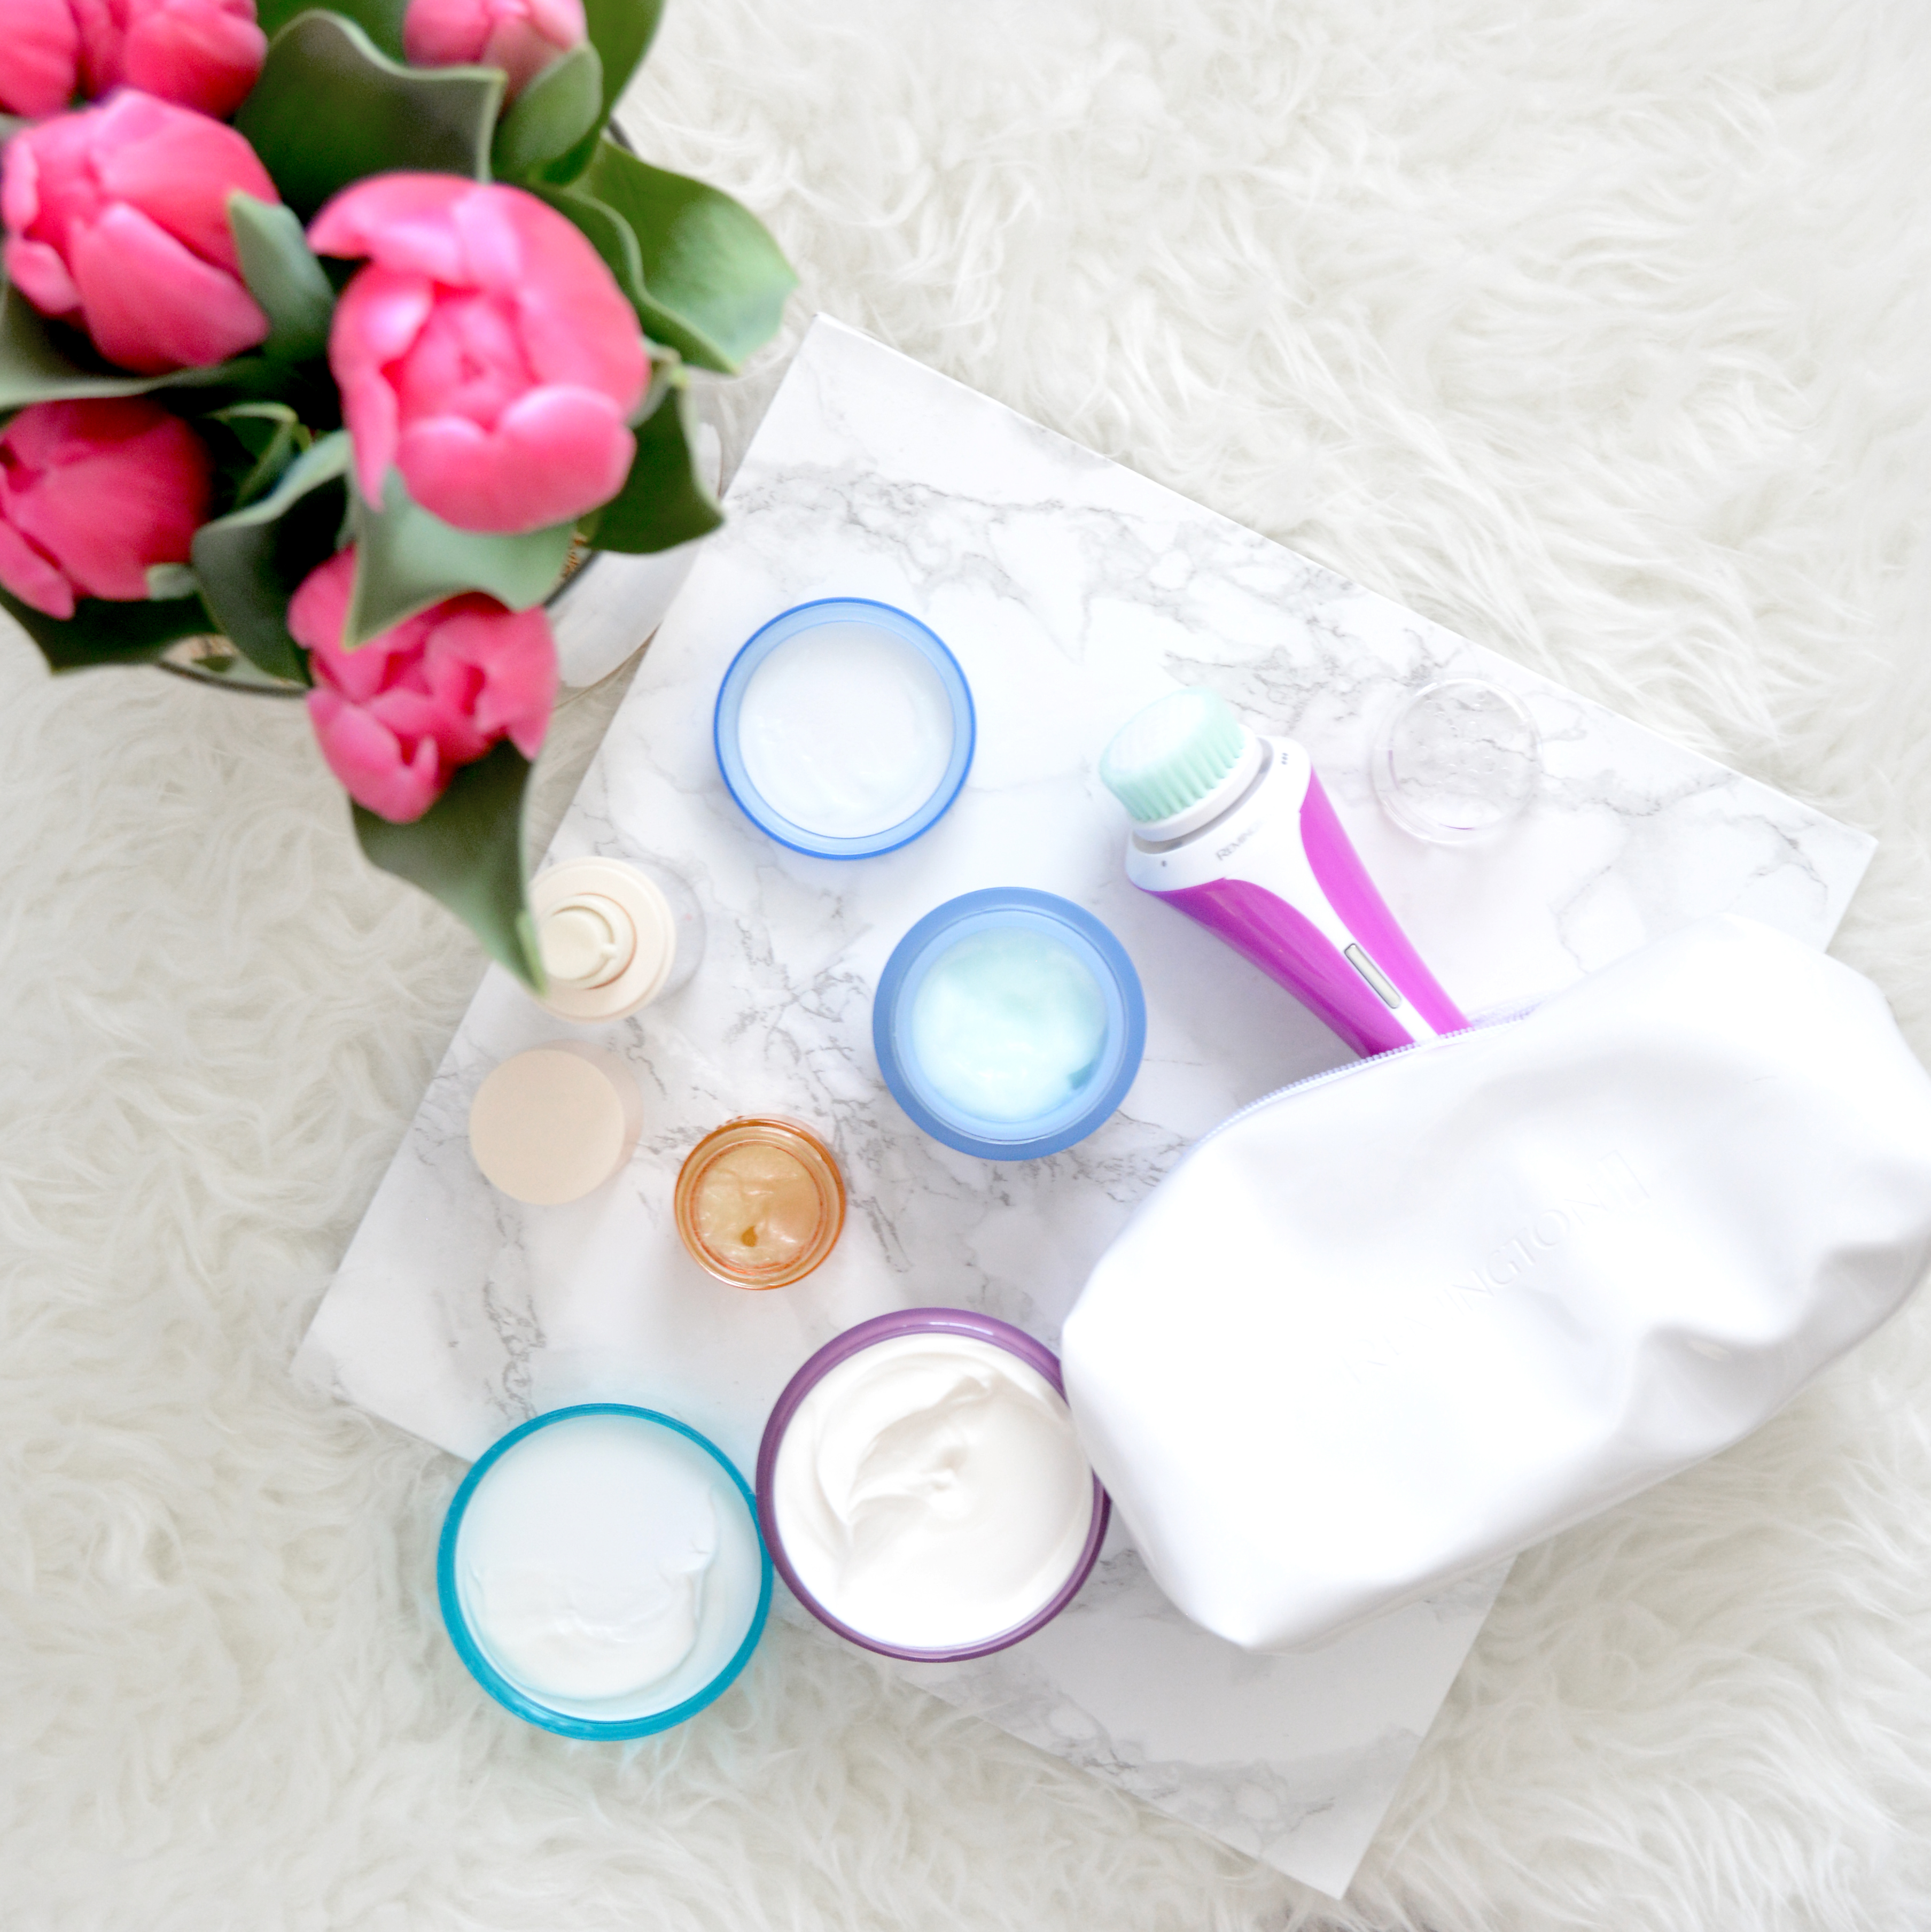 My Spring Pampering Skincare Routine